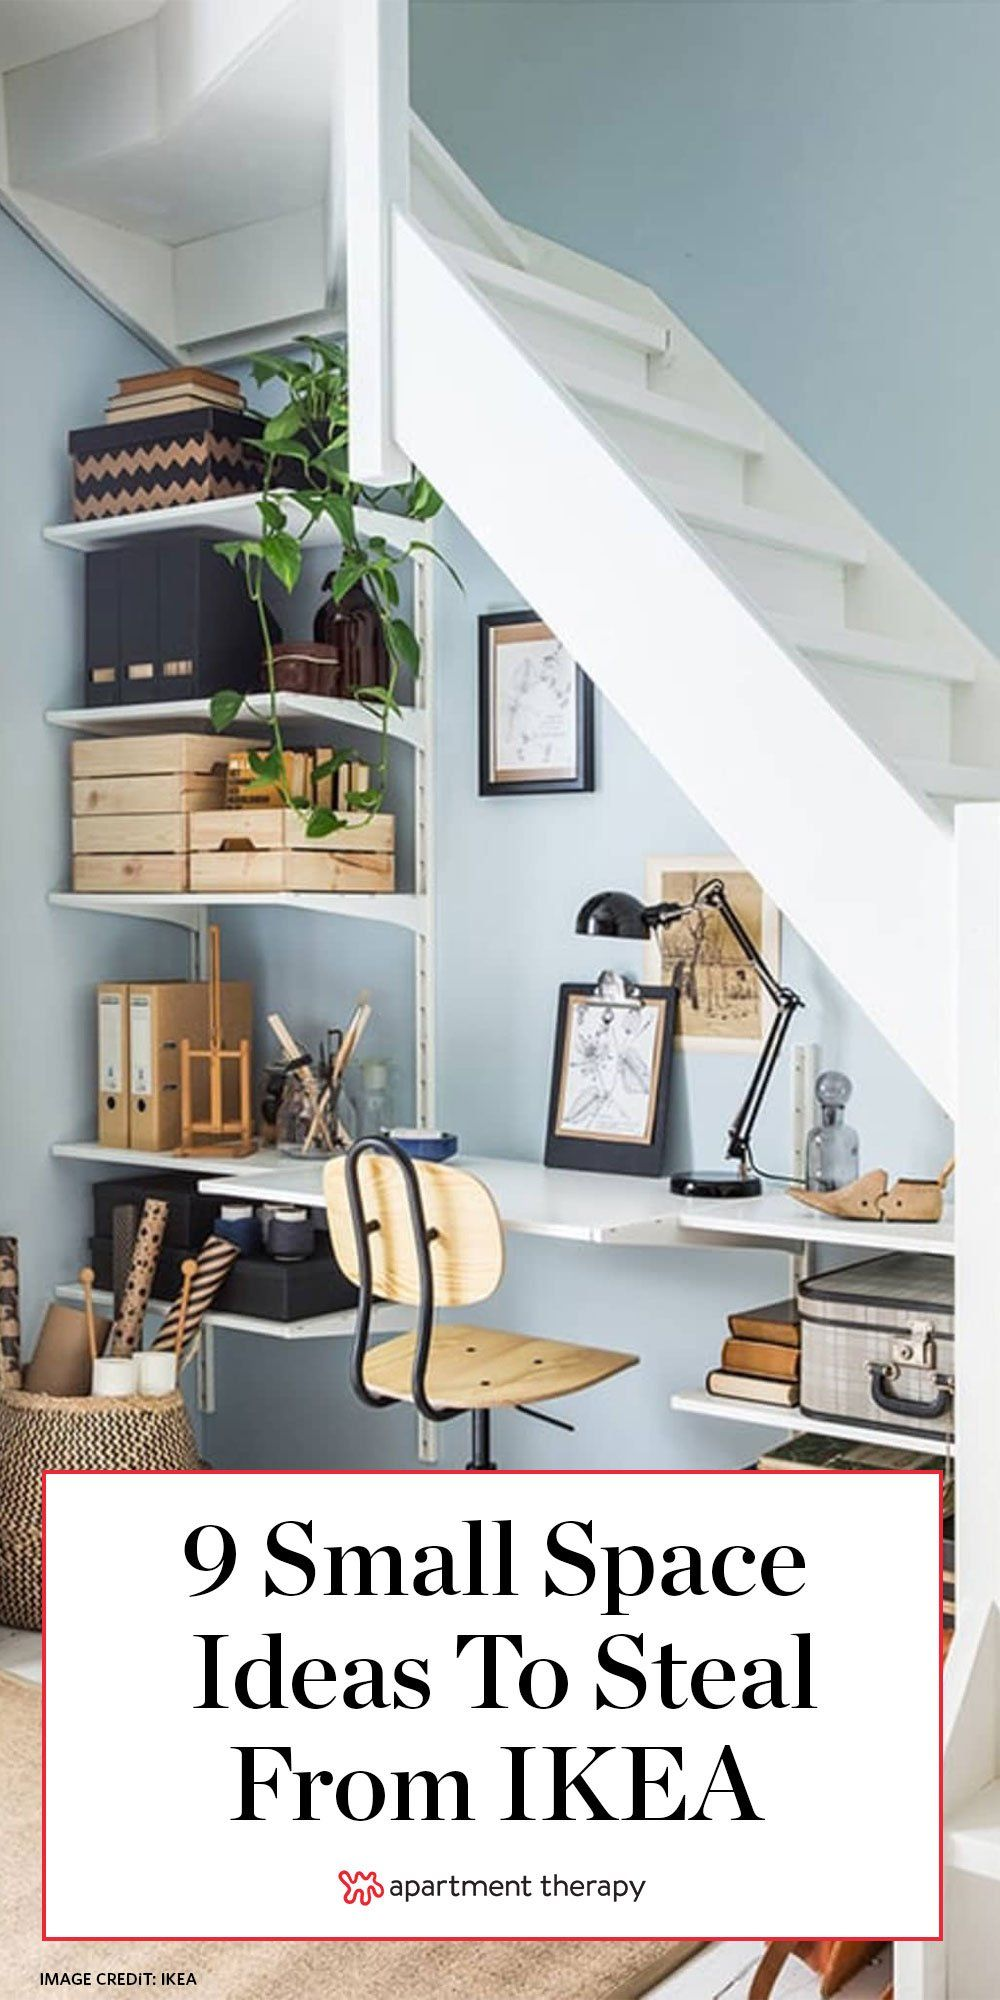 12 Clever Small Space Ideas To Steal From Ikea Small Apartment Design Ikea Small Spaces Small Spaces